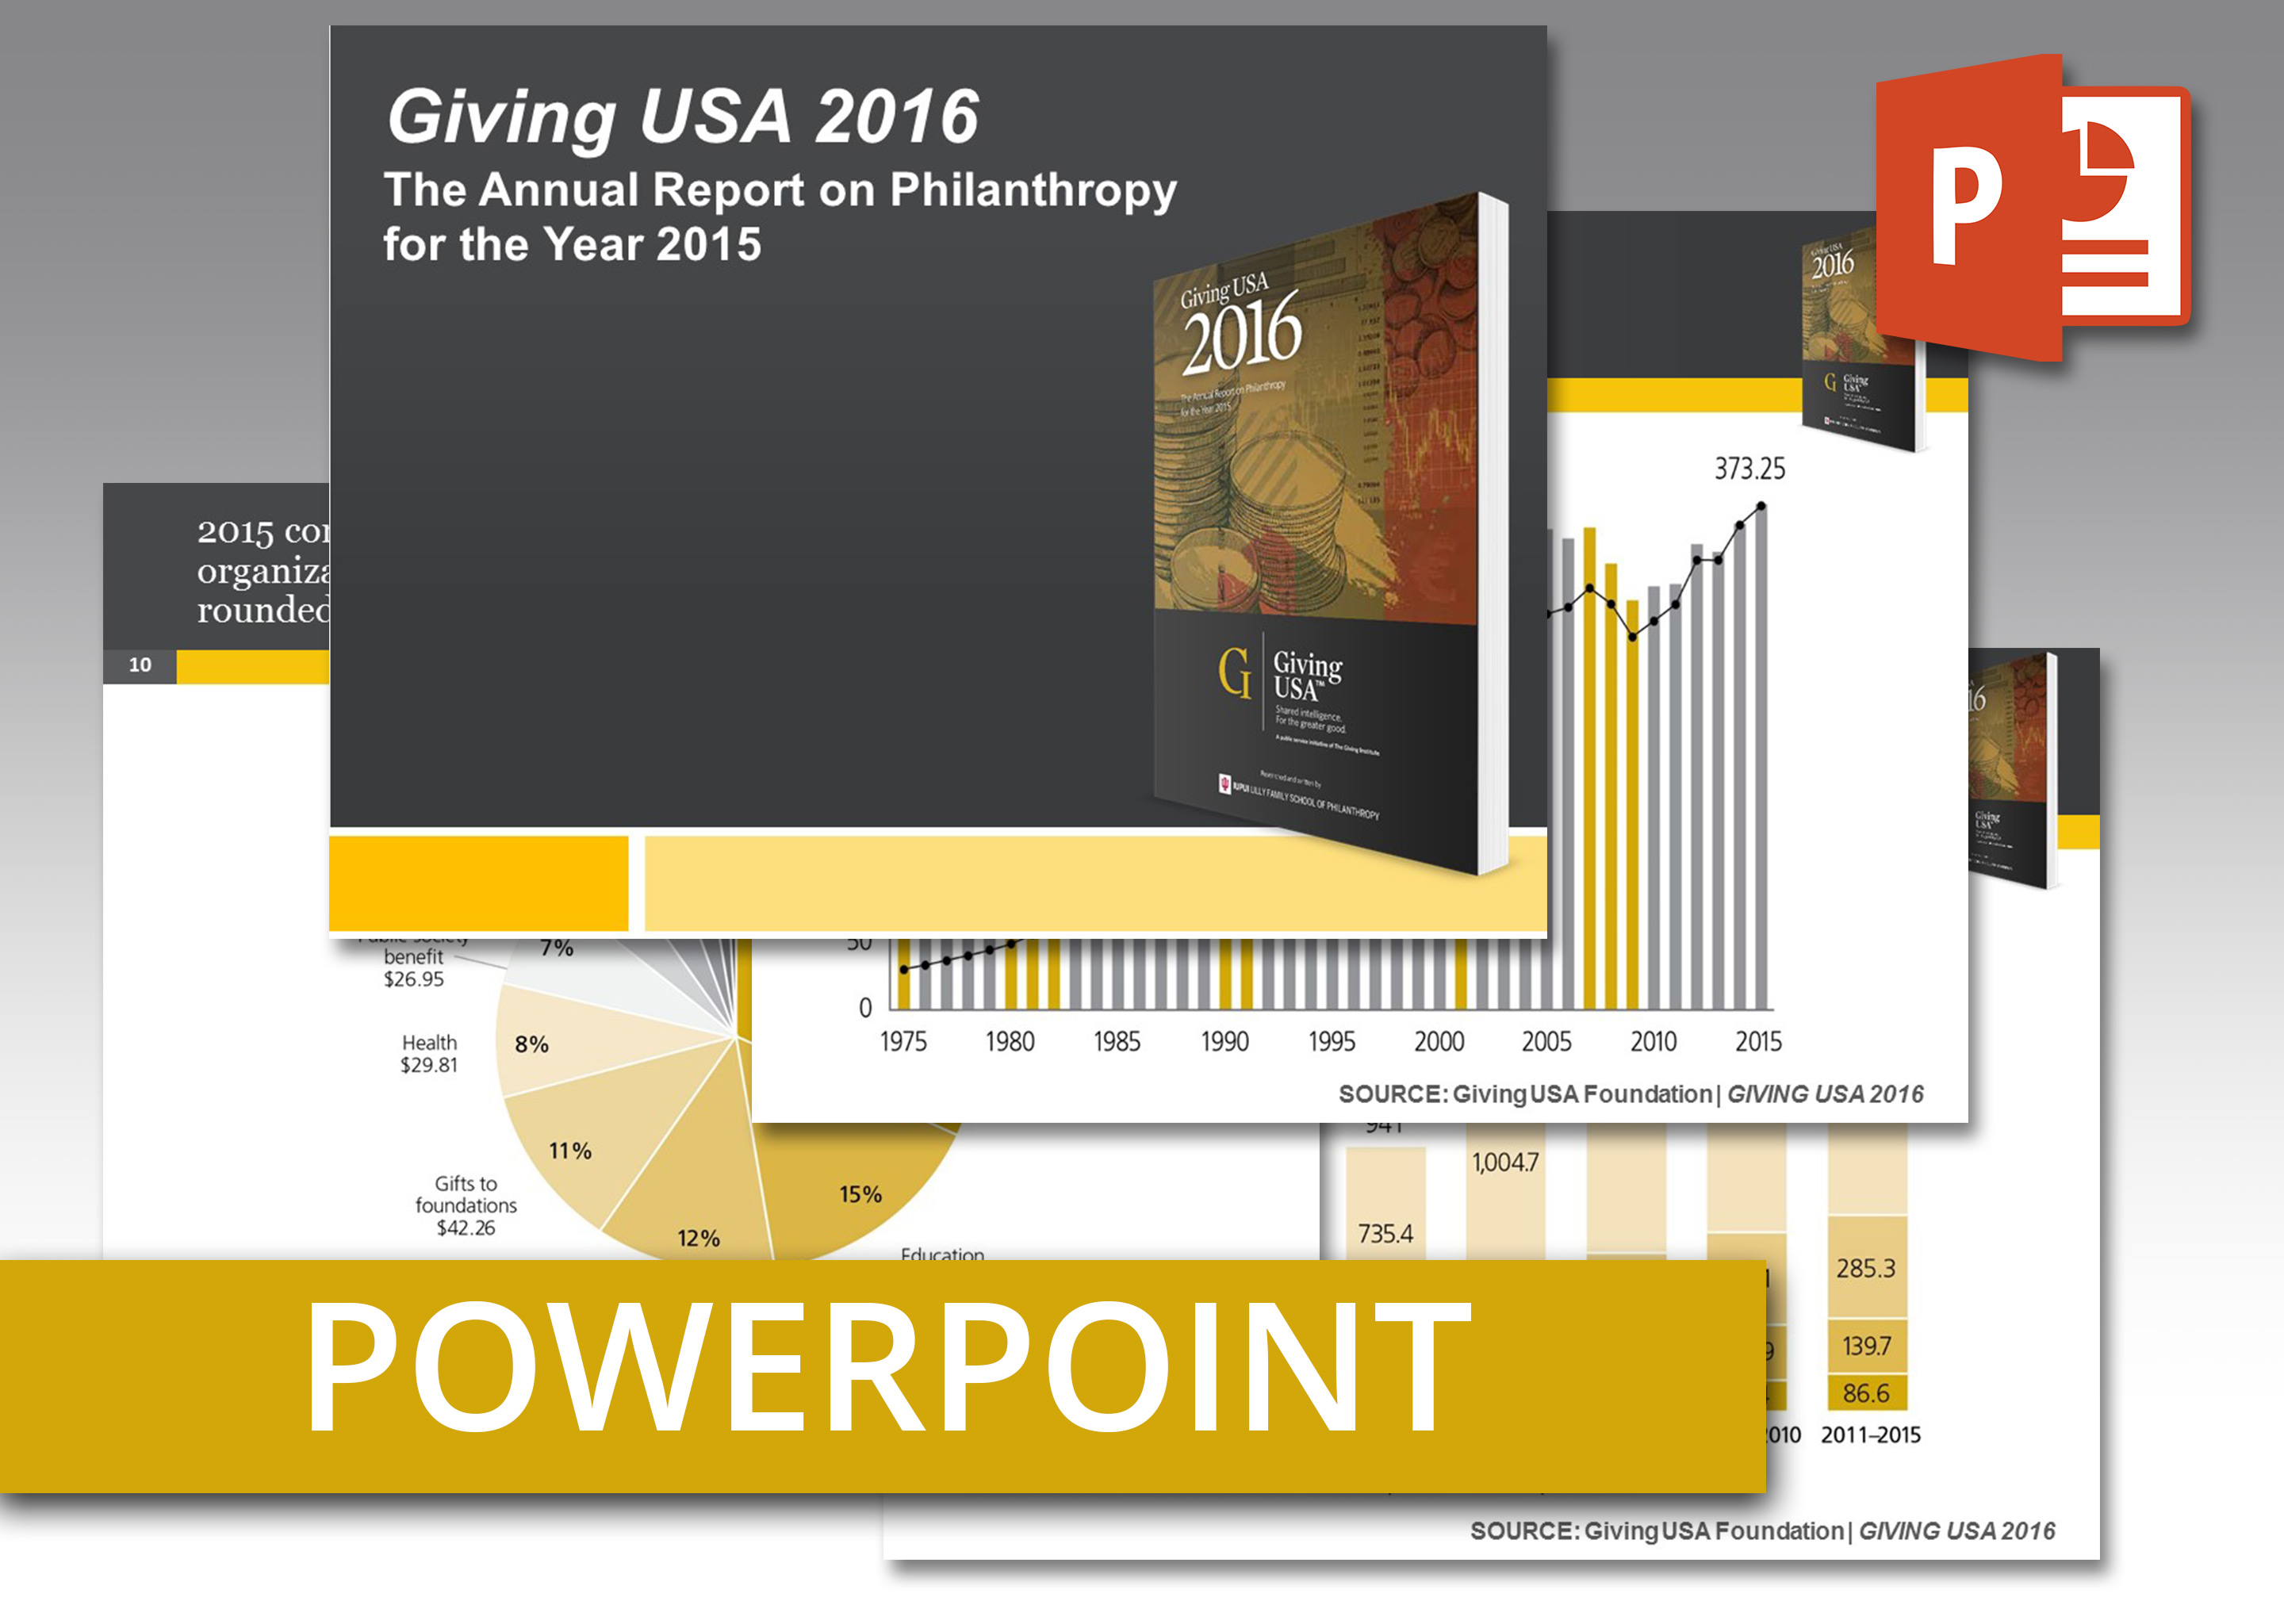 Coolmathgamesus  Nice Giving Usa  Powerpoint An Easytouse Presentation Of Report  With Remarkable Giving Usa  Powerpoint An Easytouse Presentation Of Report Findings Including Talking Points With Charming Climate Change Powerpoint Slides Also Short Story Powerpoint Presentation In Addition Scott Air Pack Powerpoint And Pshe Powerpoints As Well As Protein Synthesis Powerpoint Presentation Additionally Organisation Charts In Powerpoint From Givingusaorg With Coolmathgamesus  Remarkable Giving Usa  Powerpoint An Easytouse Presentation Of Report  With Charming Giving Usa  Powerpoint An Easytouse Presentation Of Report Findings Including Talking Points And Nice Climate Change Powerpoint Slides Also Short Story Powerpoint Presentation In Addition Scott Air Pack Powerpoint From Givingusaorg